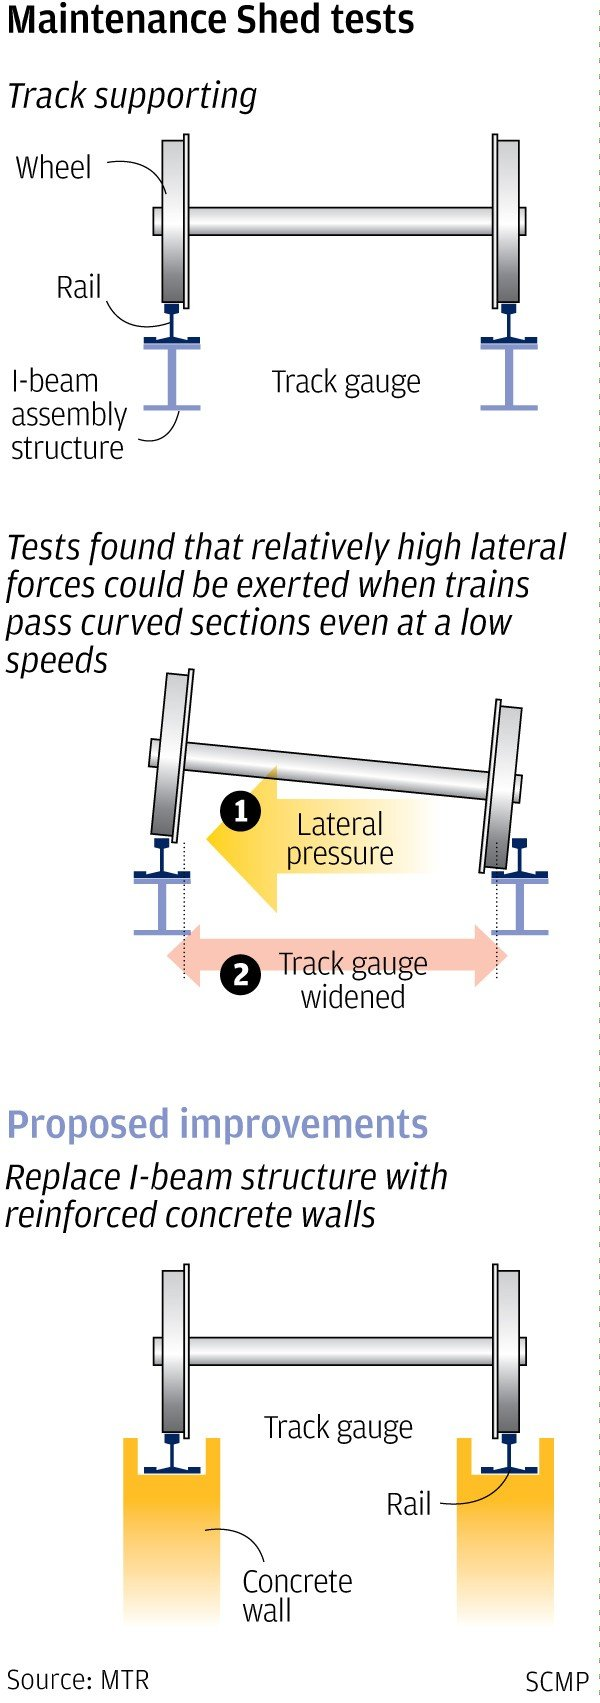 the panel and the independent railway expert concluded the incident was a site specific issue unique to track no 4